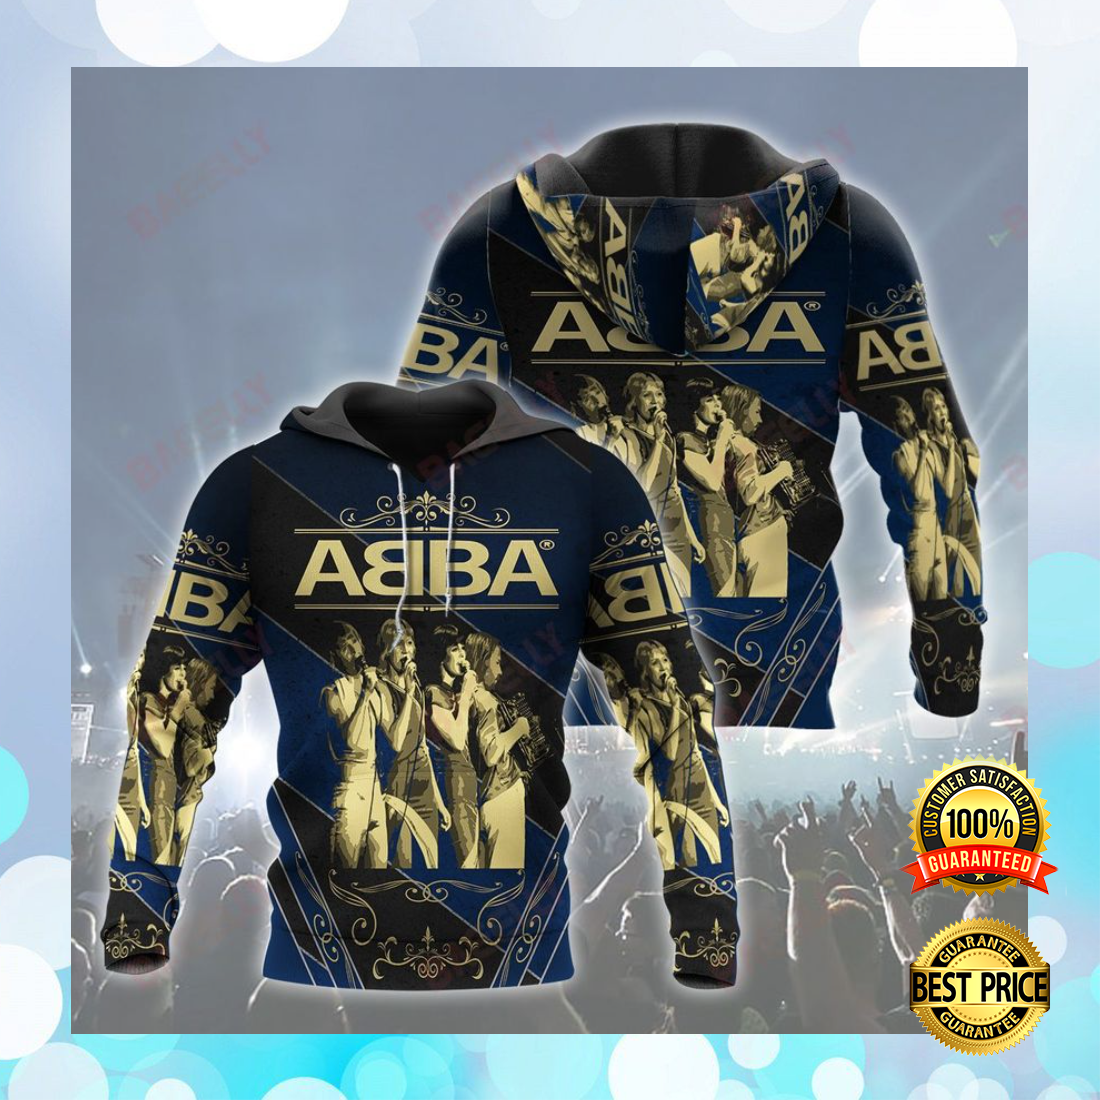 ABBA ALL OVER PRINT 3D HOODIE 5